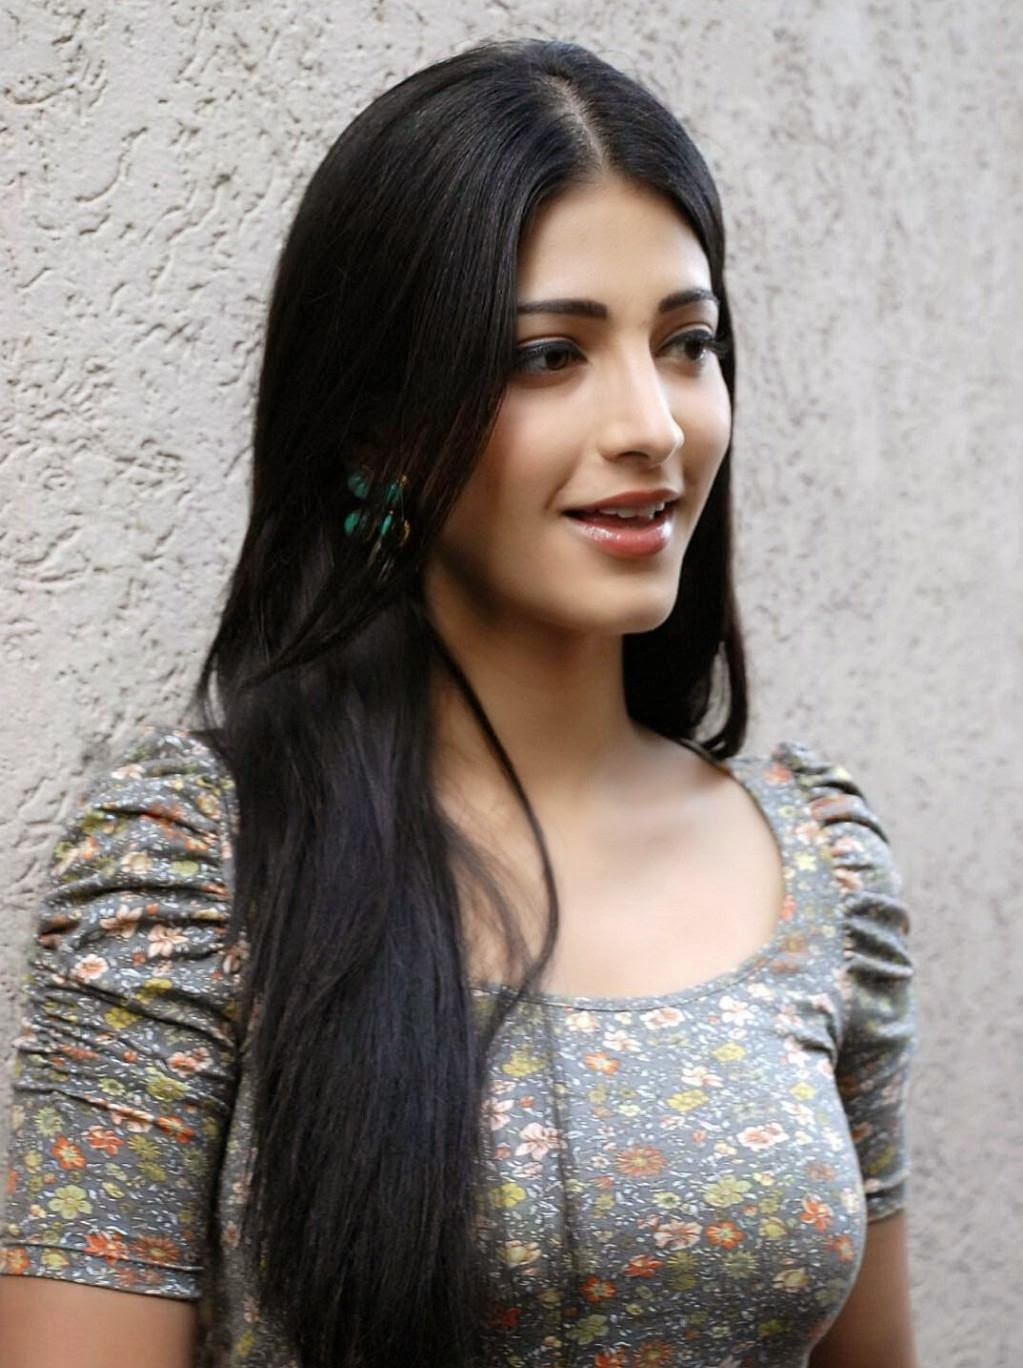 shruti hassan hot spicy images